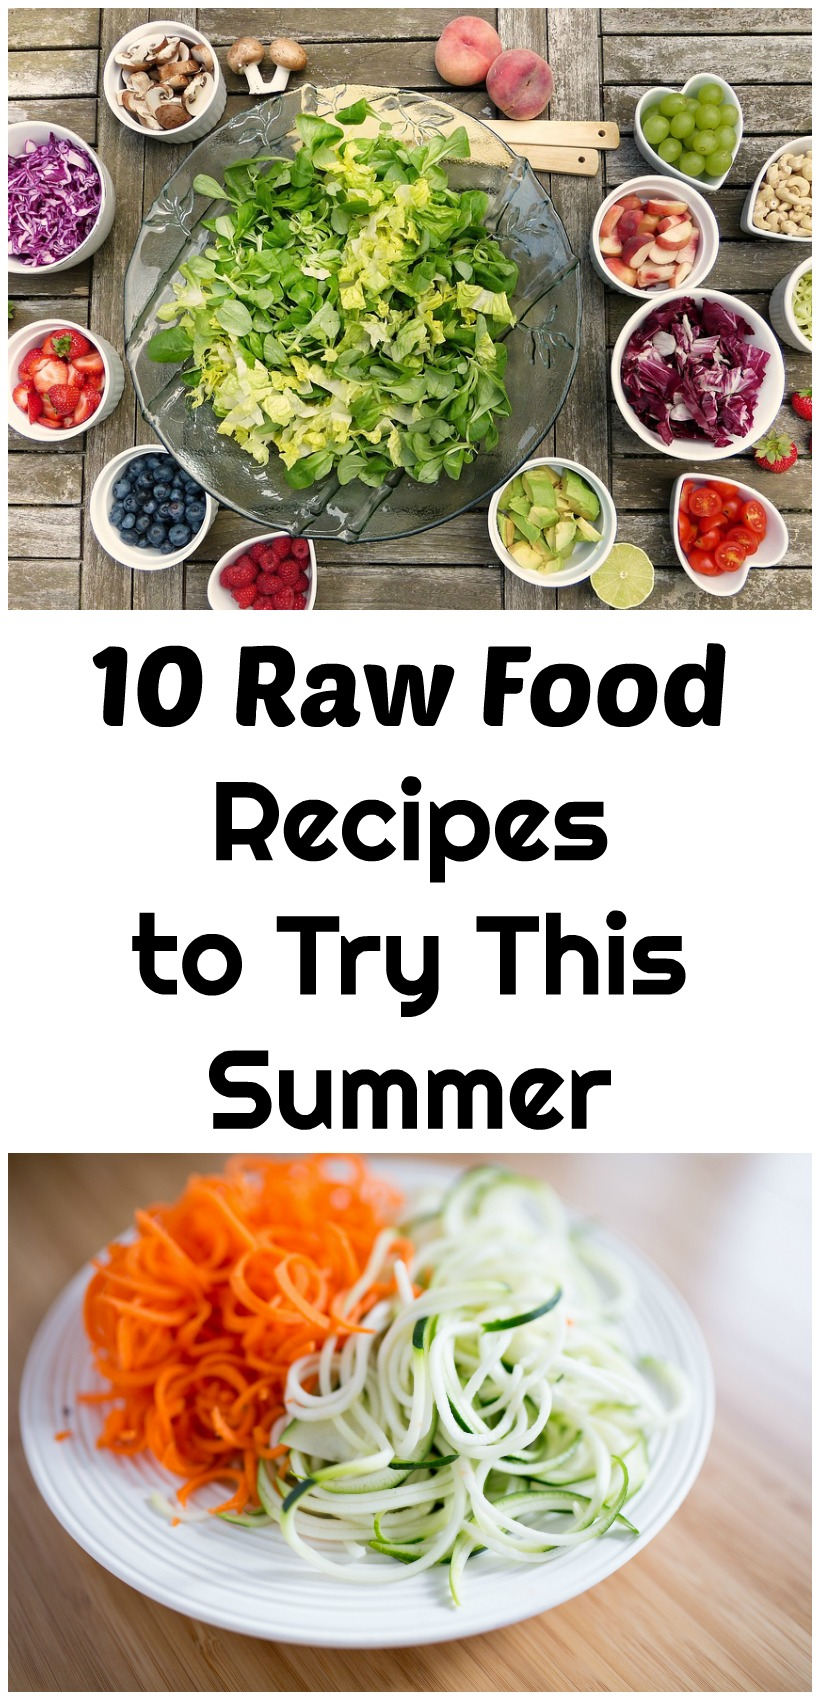 10 raw food recipes to try this summer raw food recipes to try this summer forumfinder Image collections